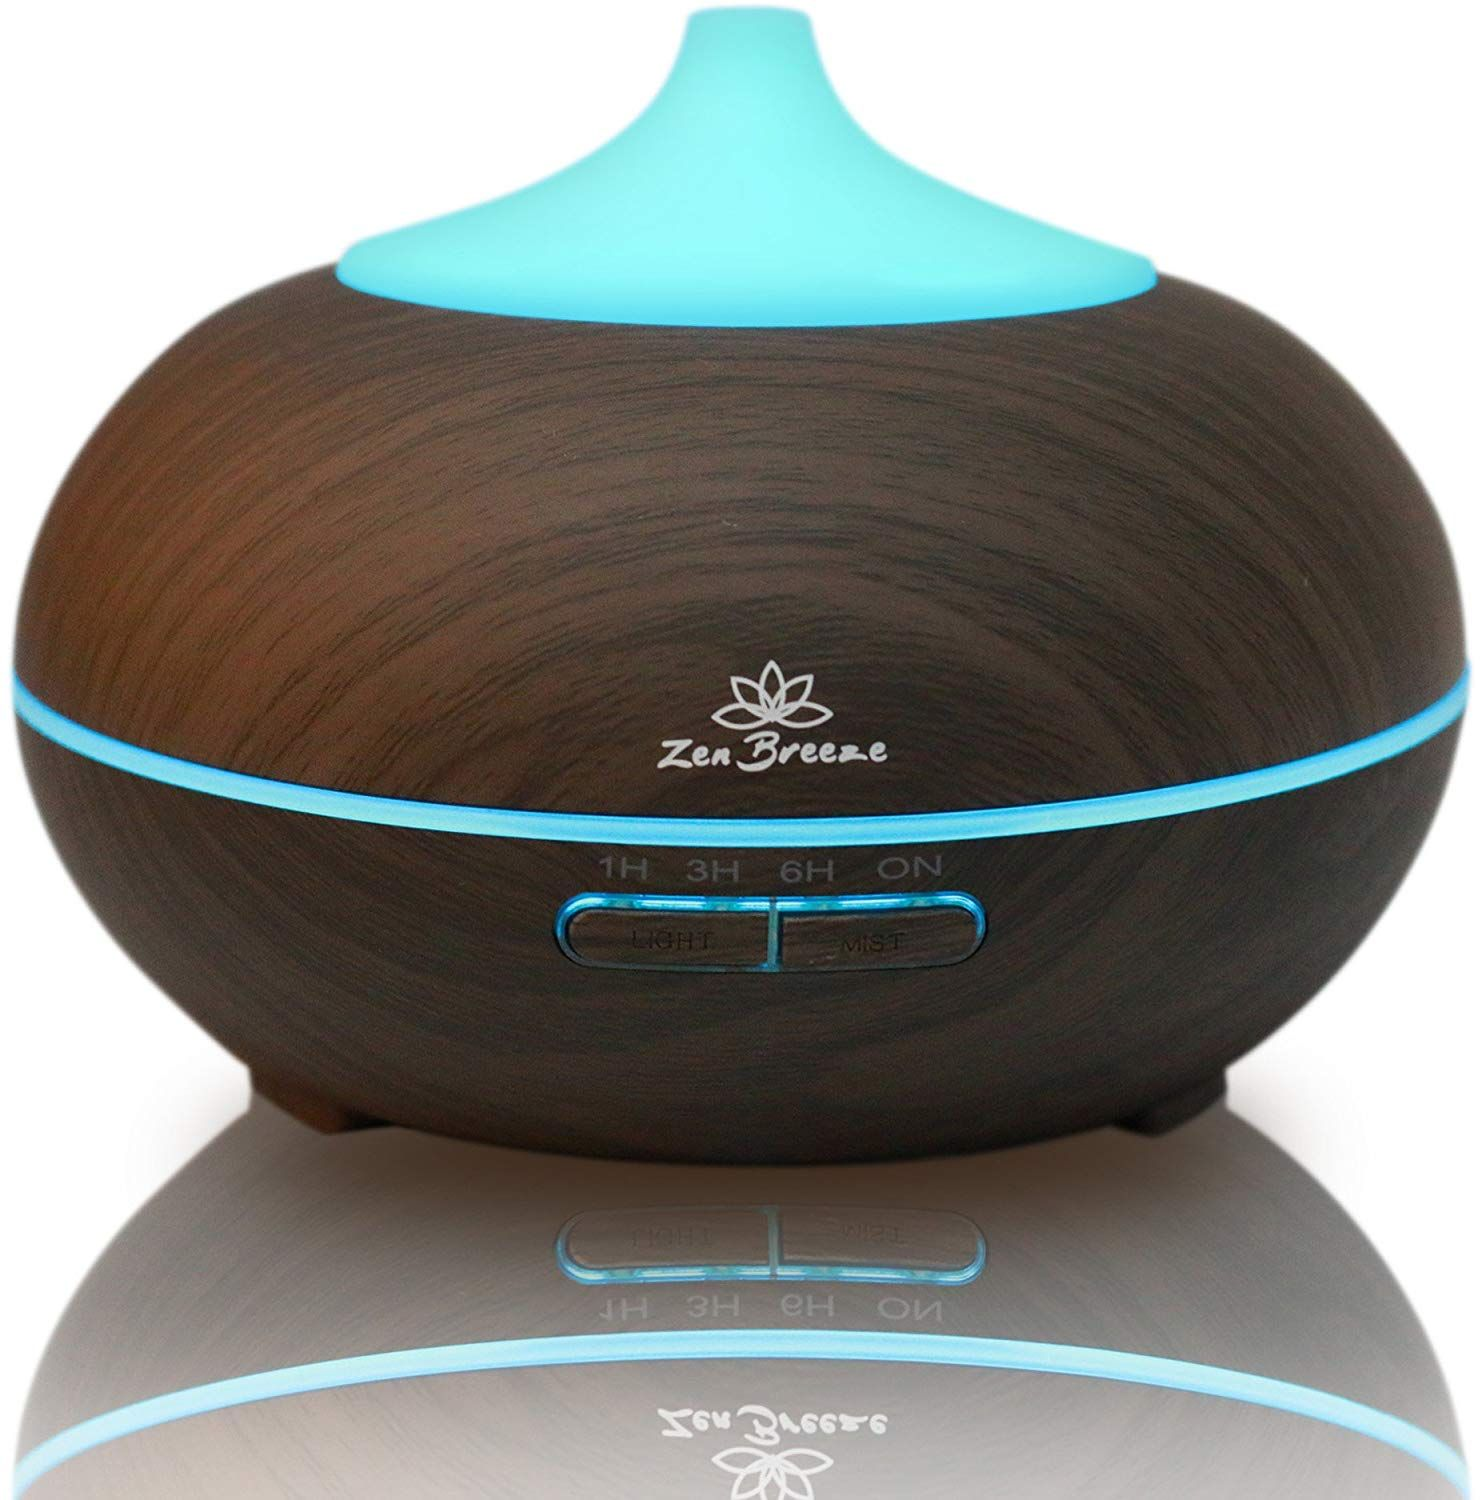 7f9fdc6adff254ff58fb43369ee68c5e - Better Homes And Gardens Aroma Diffuser Instructions